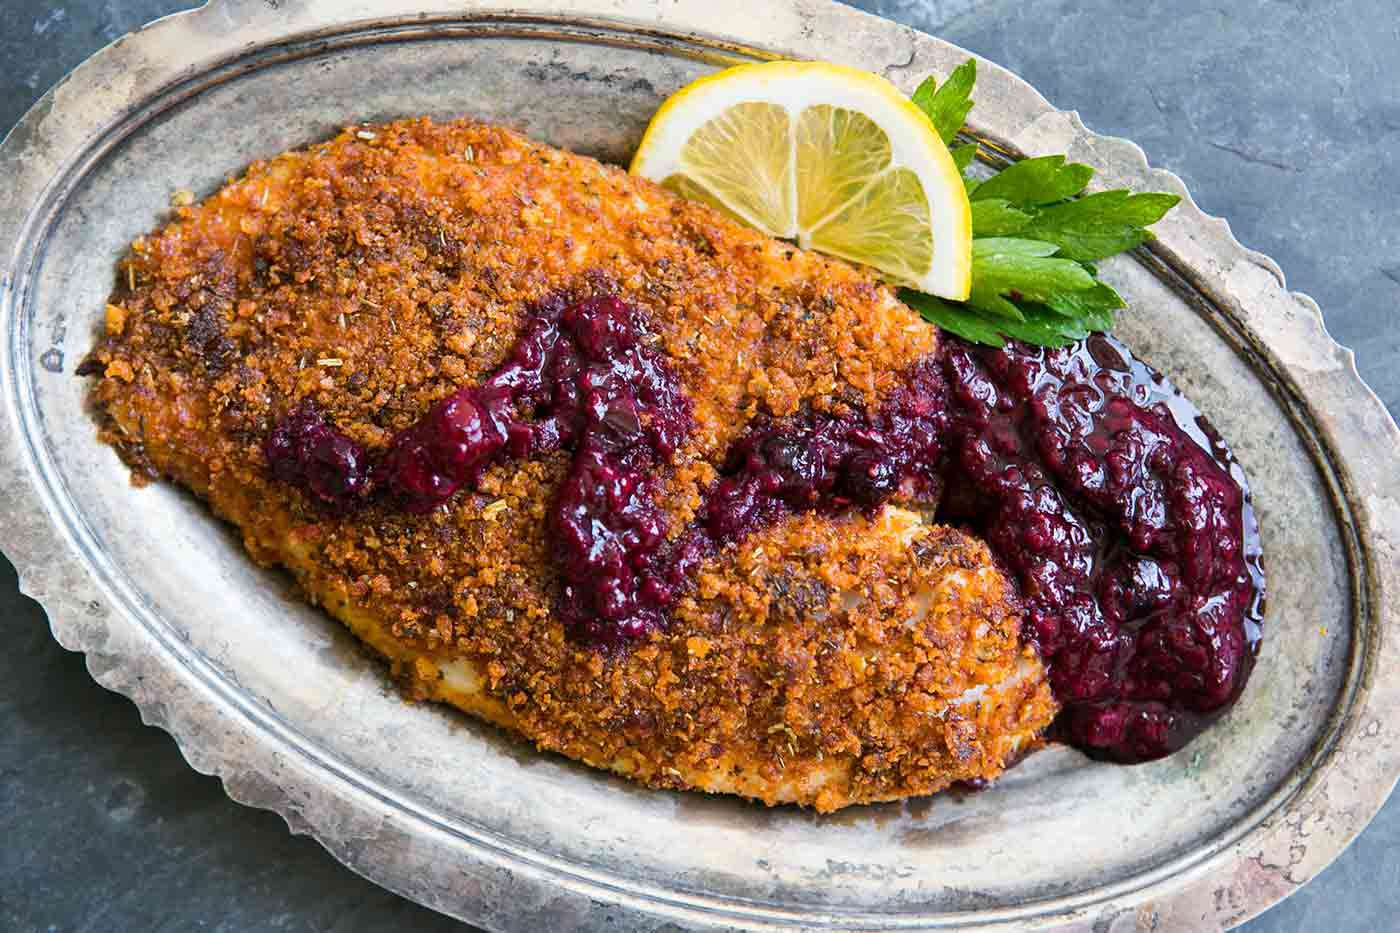 Baked Tilapia with Sun-Dried Tomatoes and Parmesan